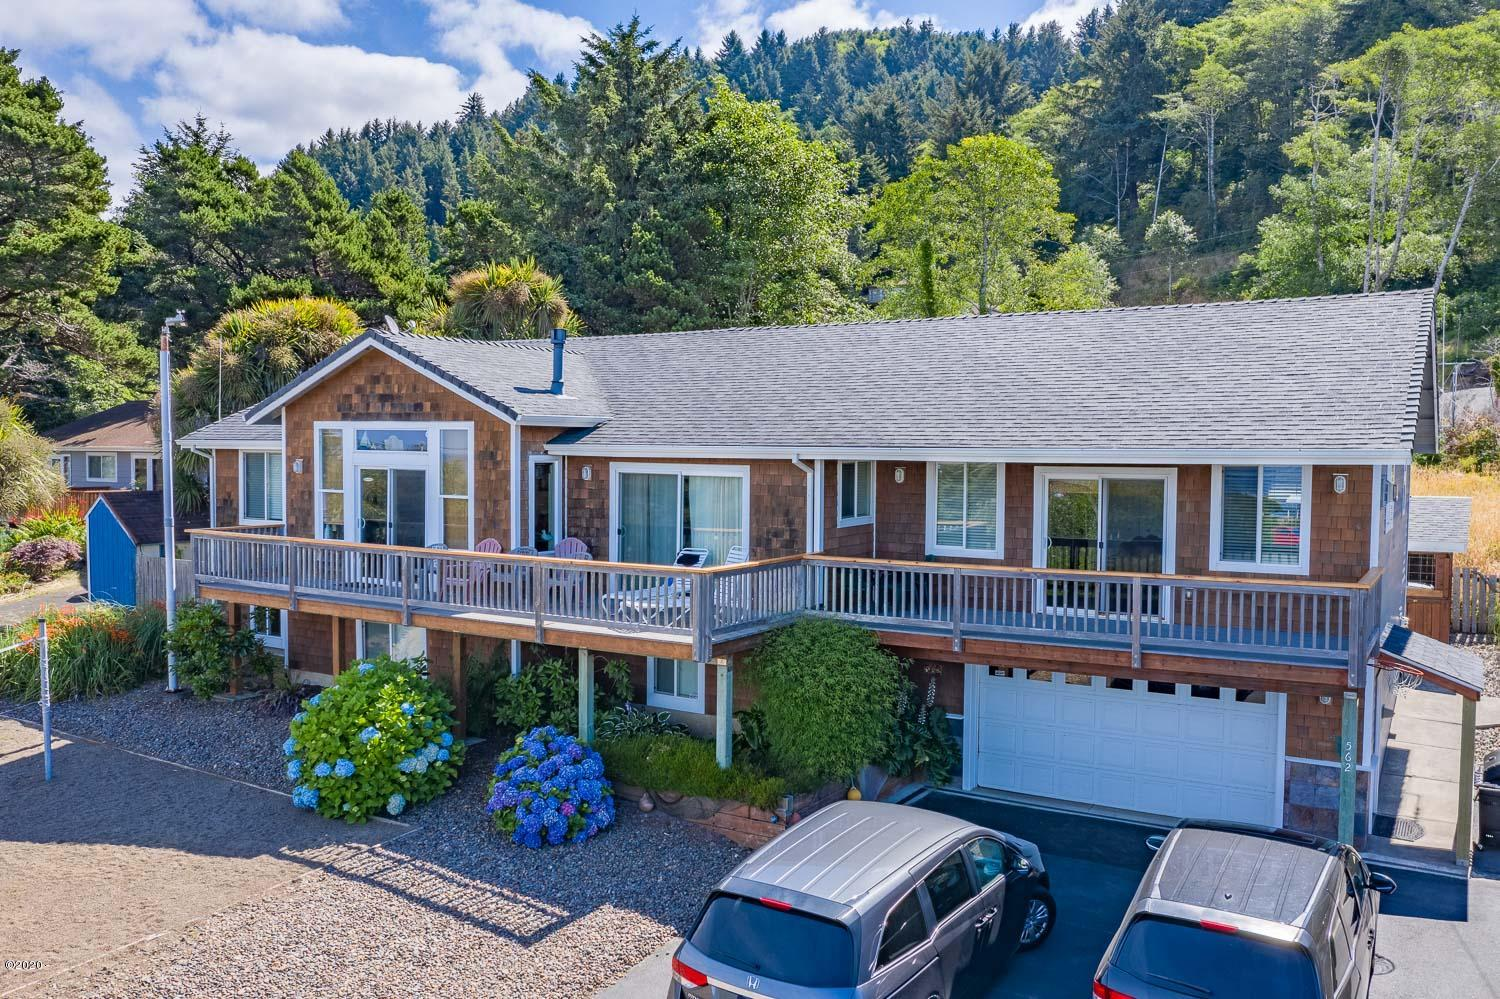 562 S Hwy 101, Yachats, OR 97498 - Front Of The Home